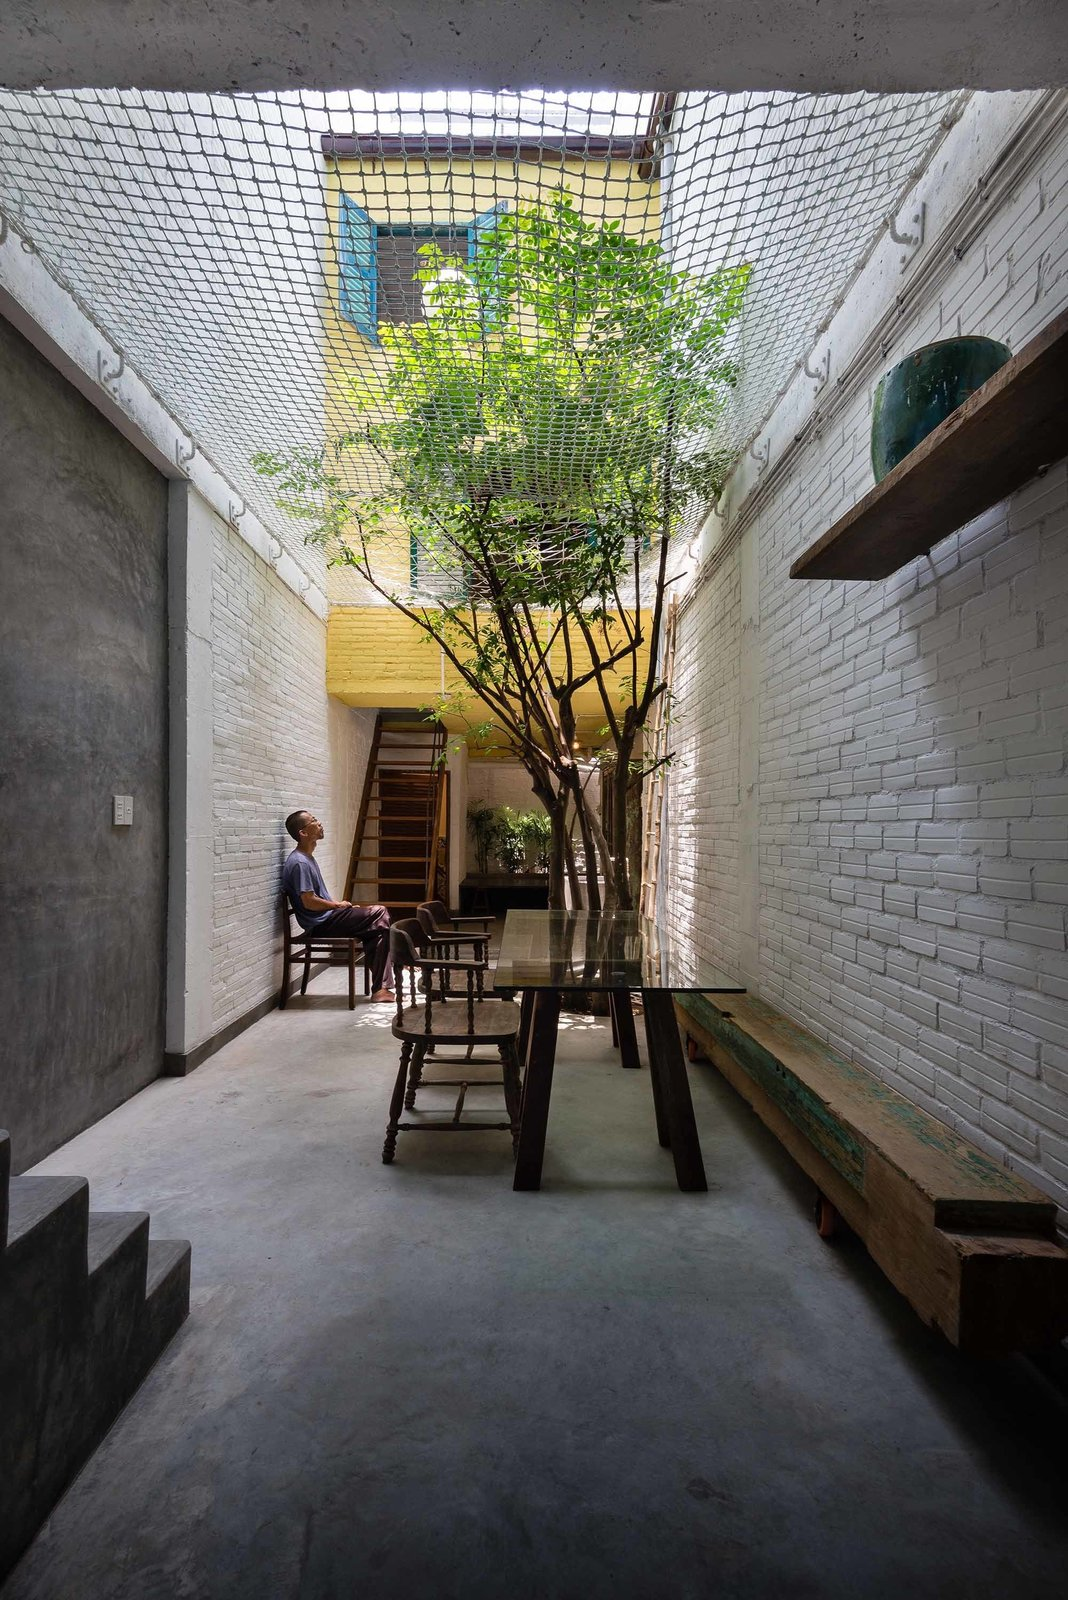 With so many small interior rooms and divisions between spaces, the addition of a net ceiling brings openness to the back alleyway, where the family often gathers to eat dinner. Not only does the net allow for ventilation and light, but it offers a place to play for the children, who love to climb and lounge above their parents.